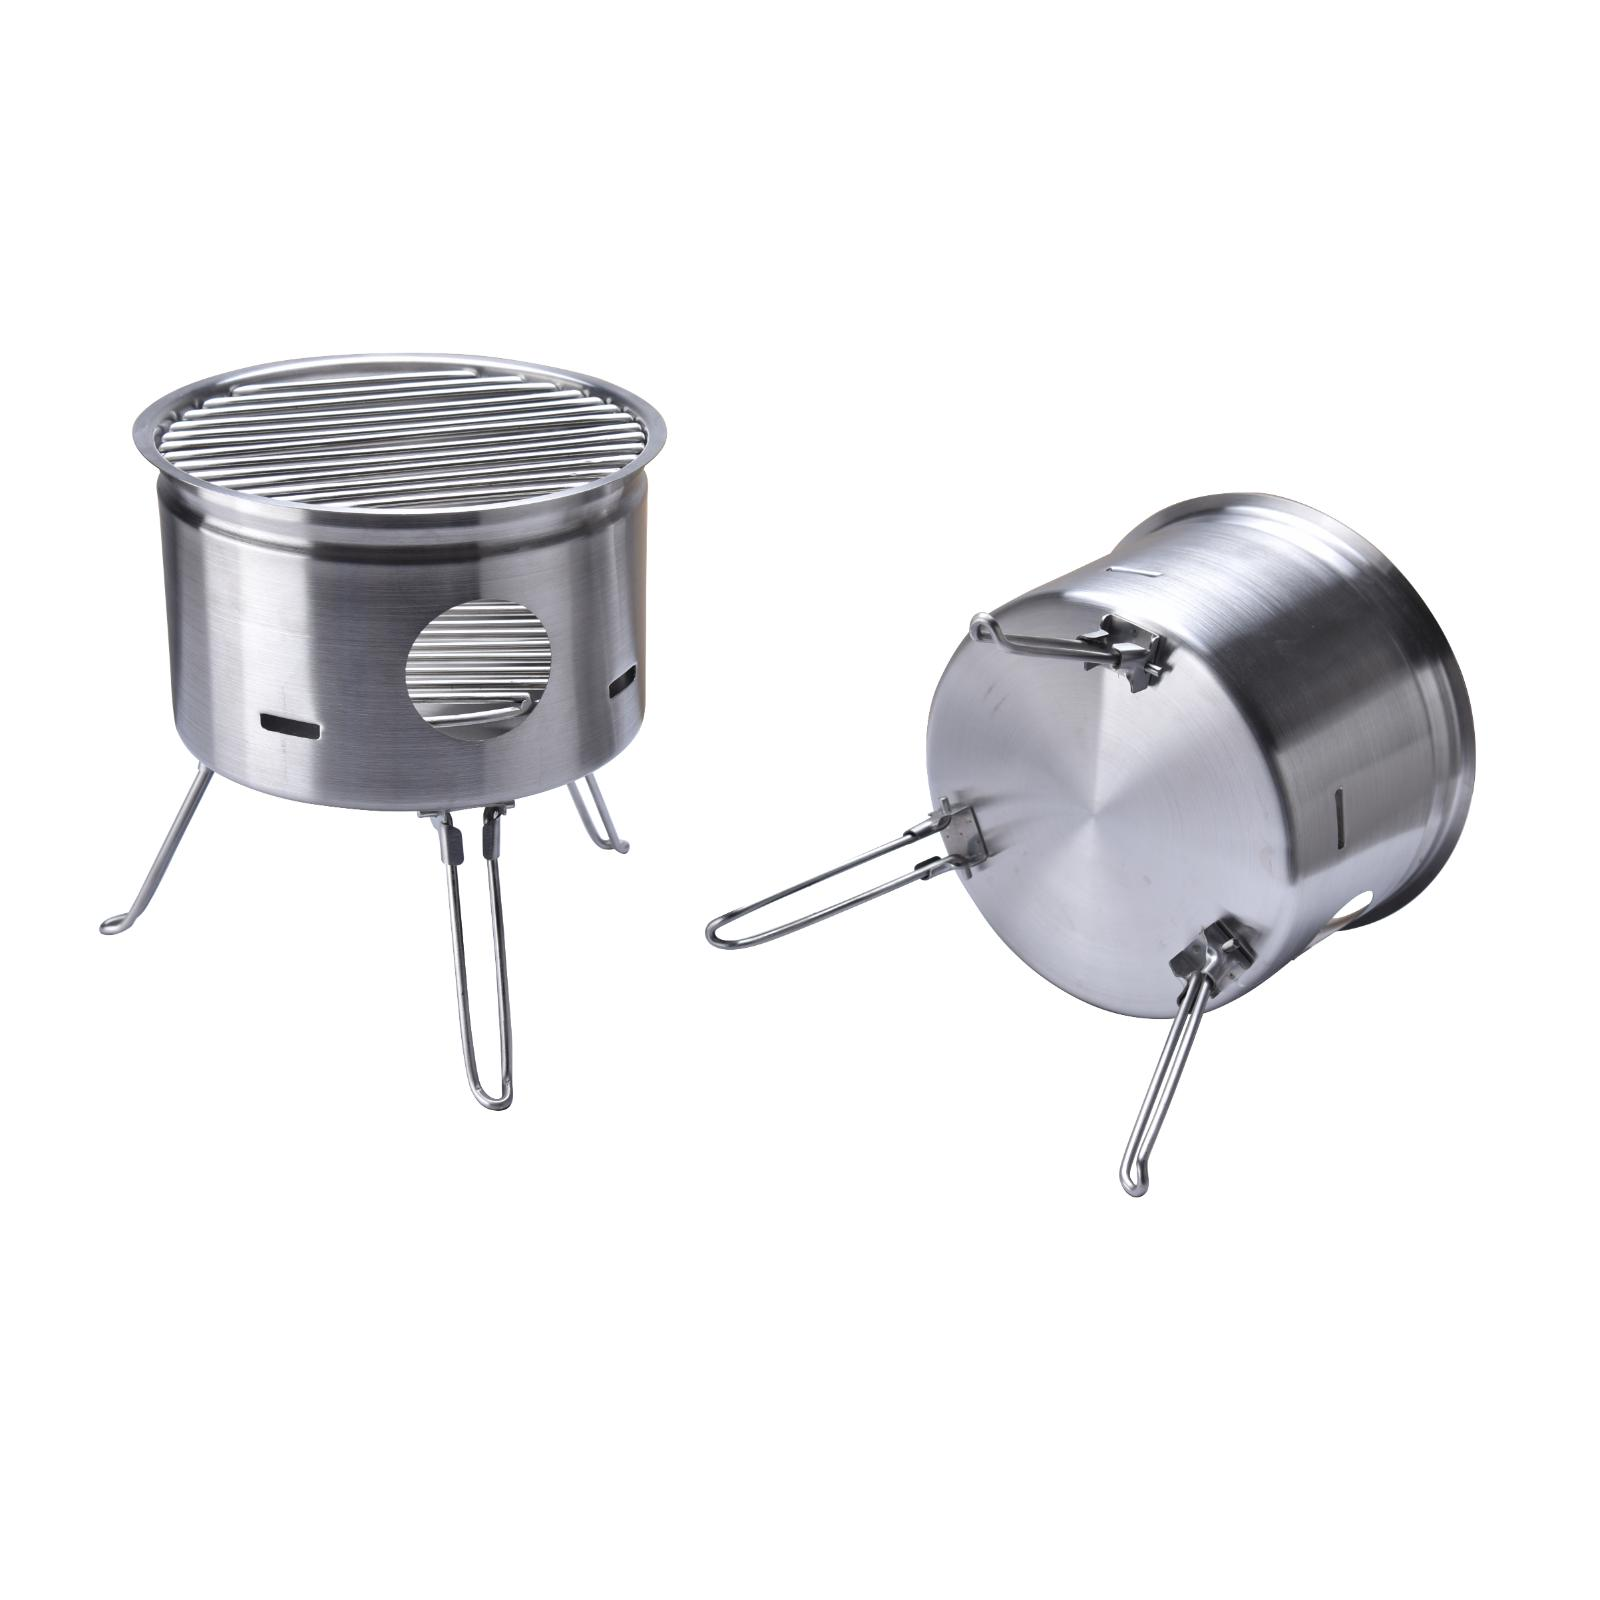 Outdoor Stainless Steel Camping Portable Burning